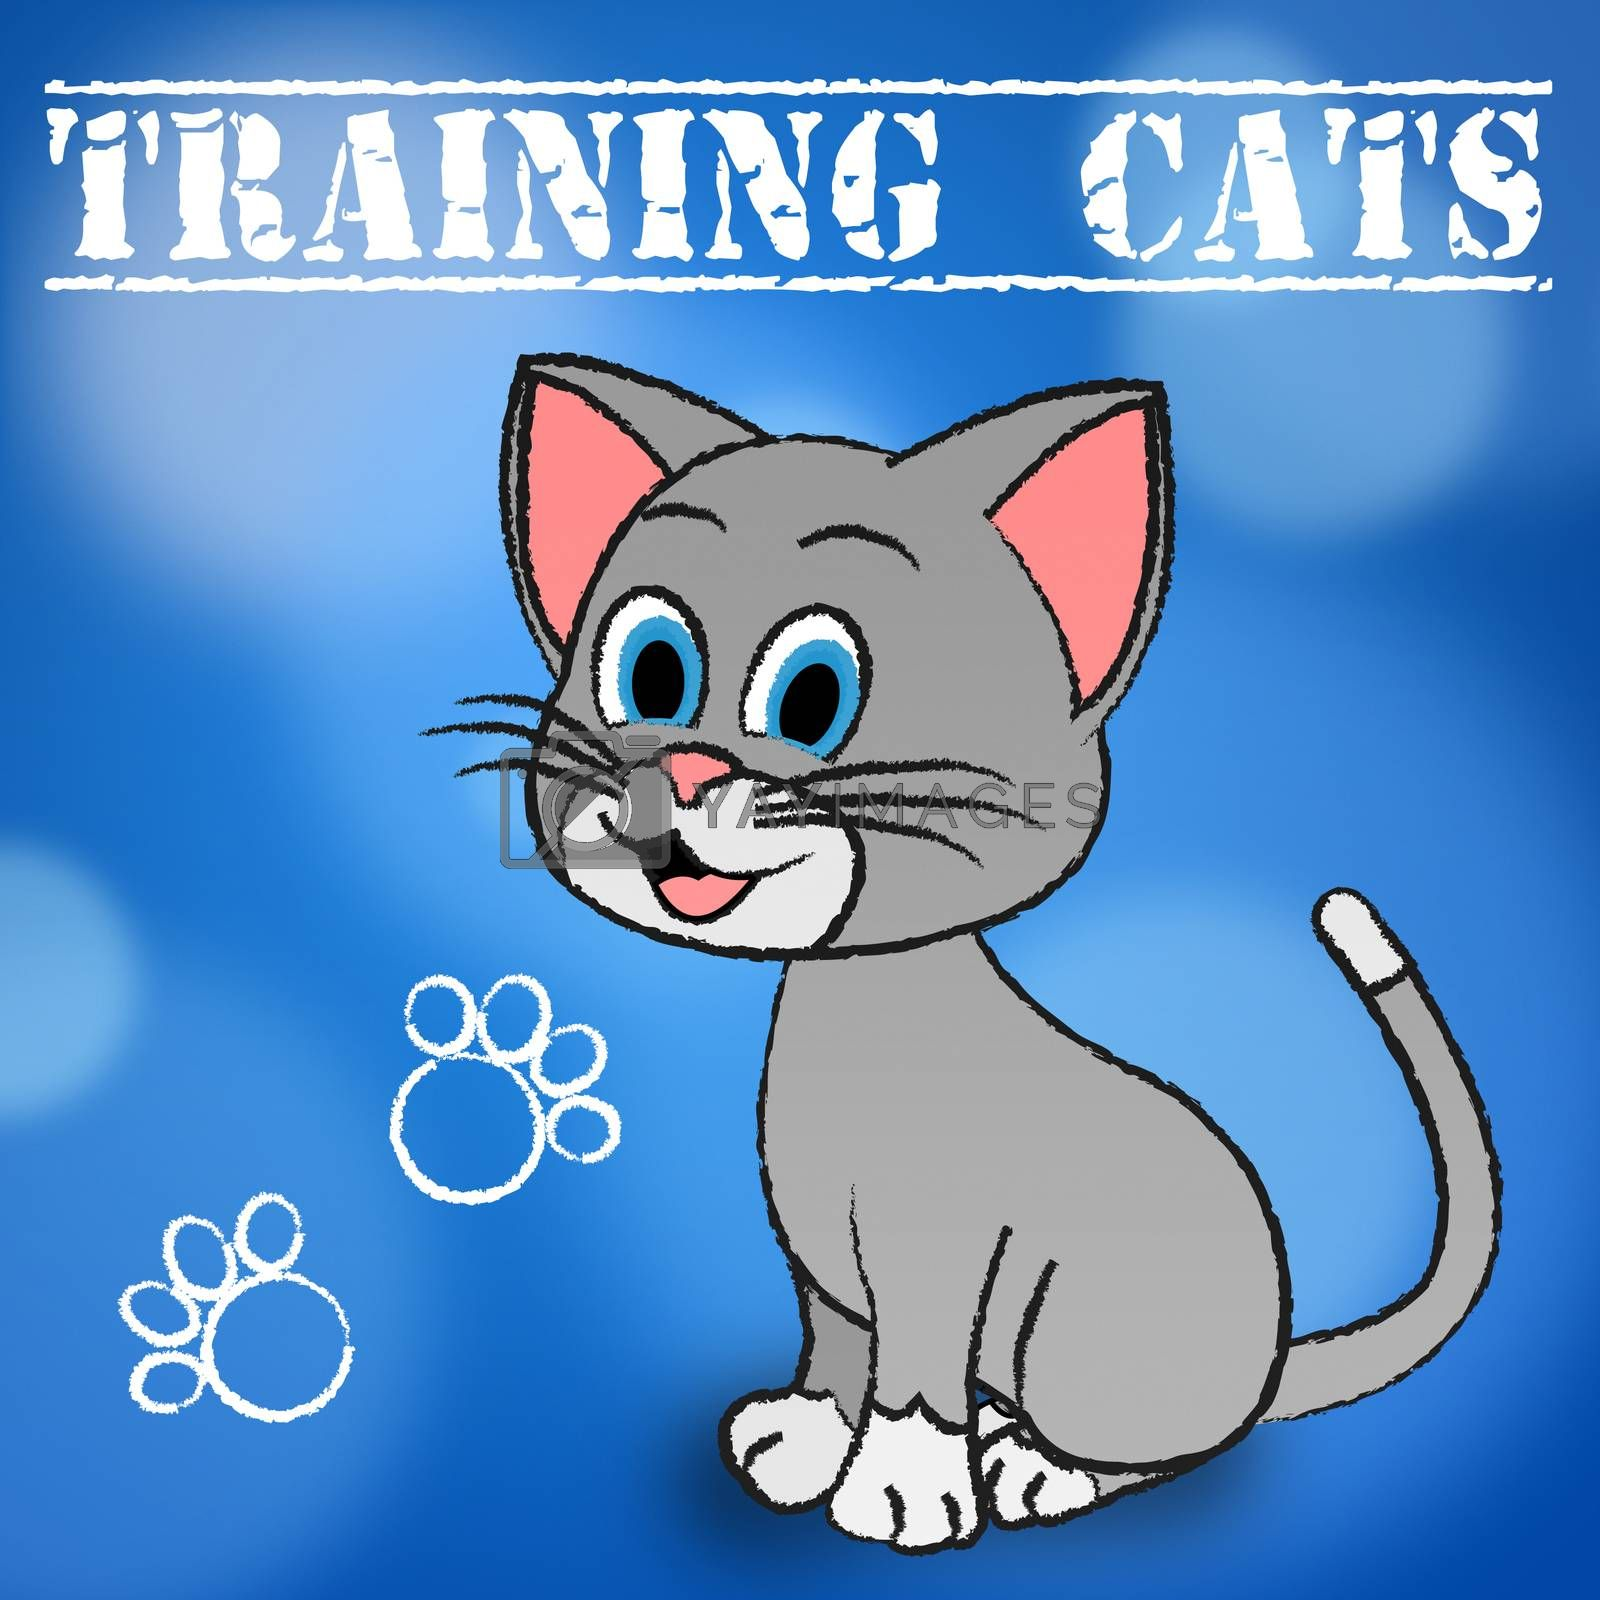 Training Cats Indicating Pets Trained And Felines